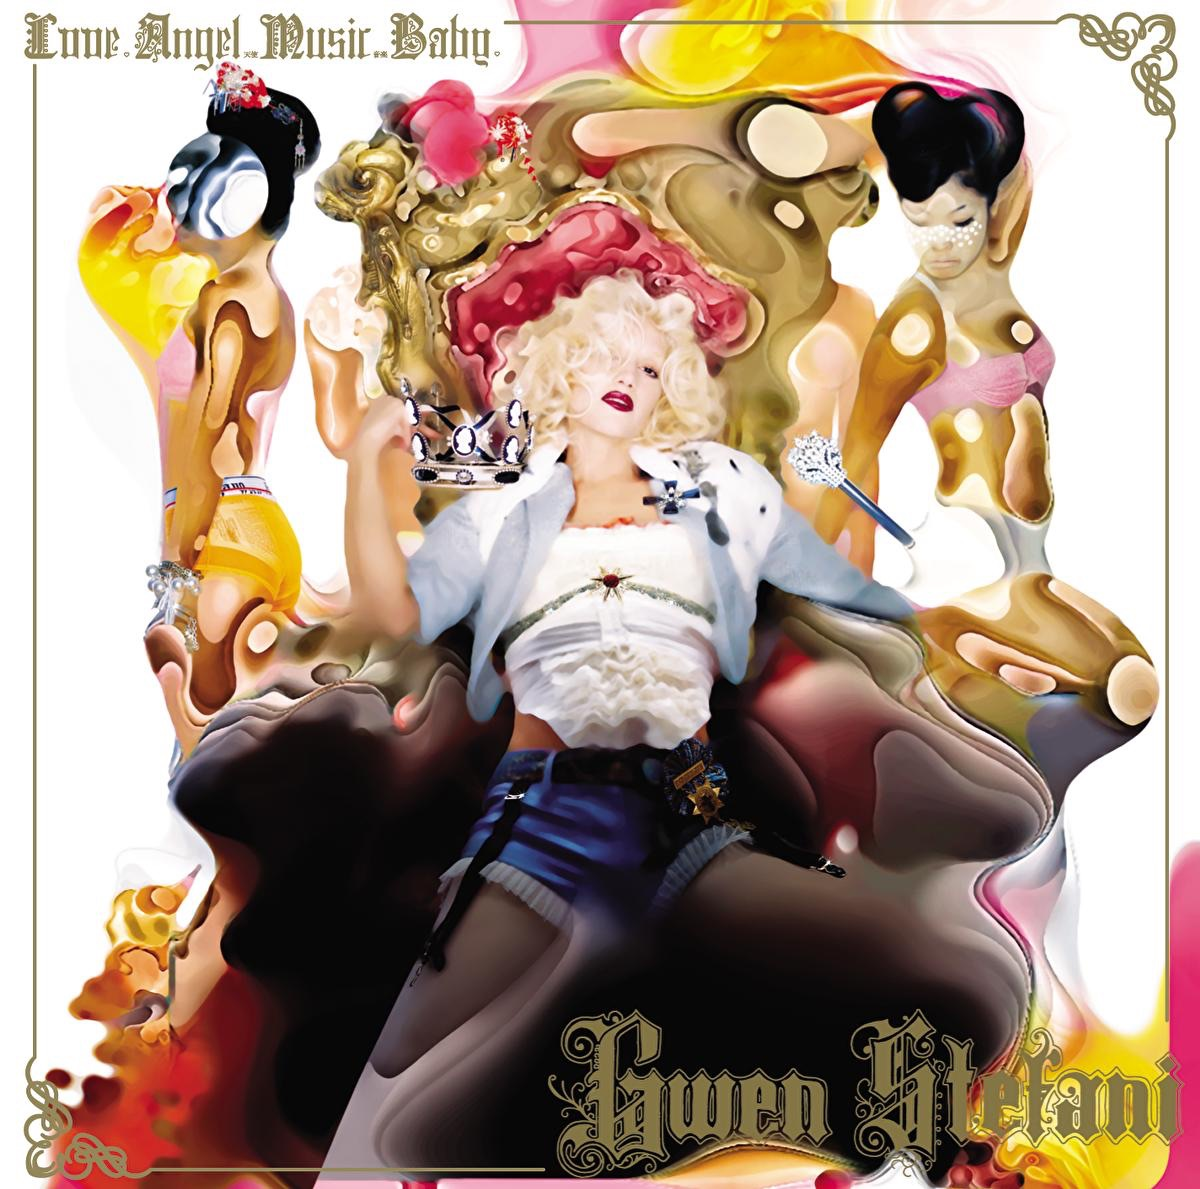 Love Angel Music Baby Gwen Stefani CD cover